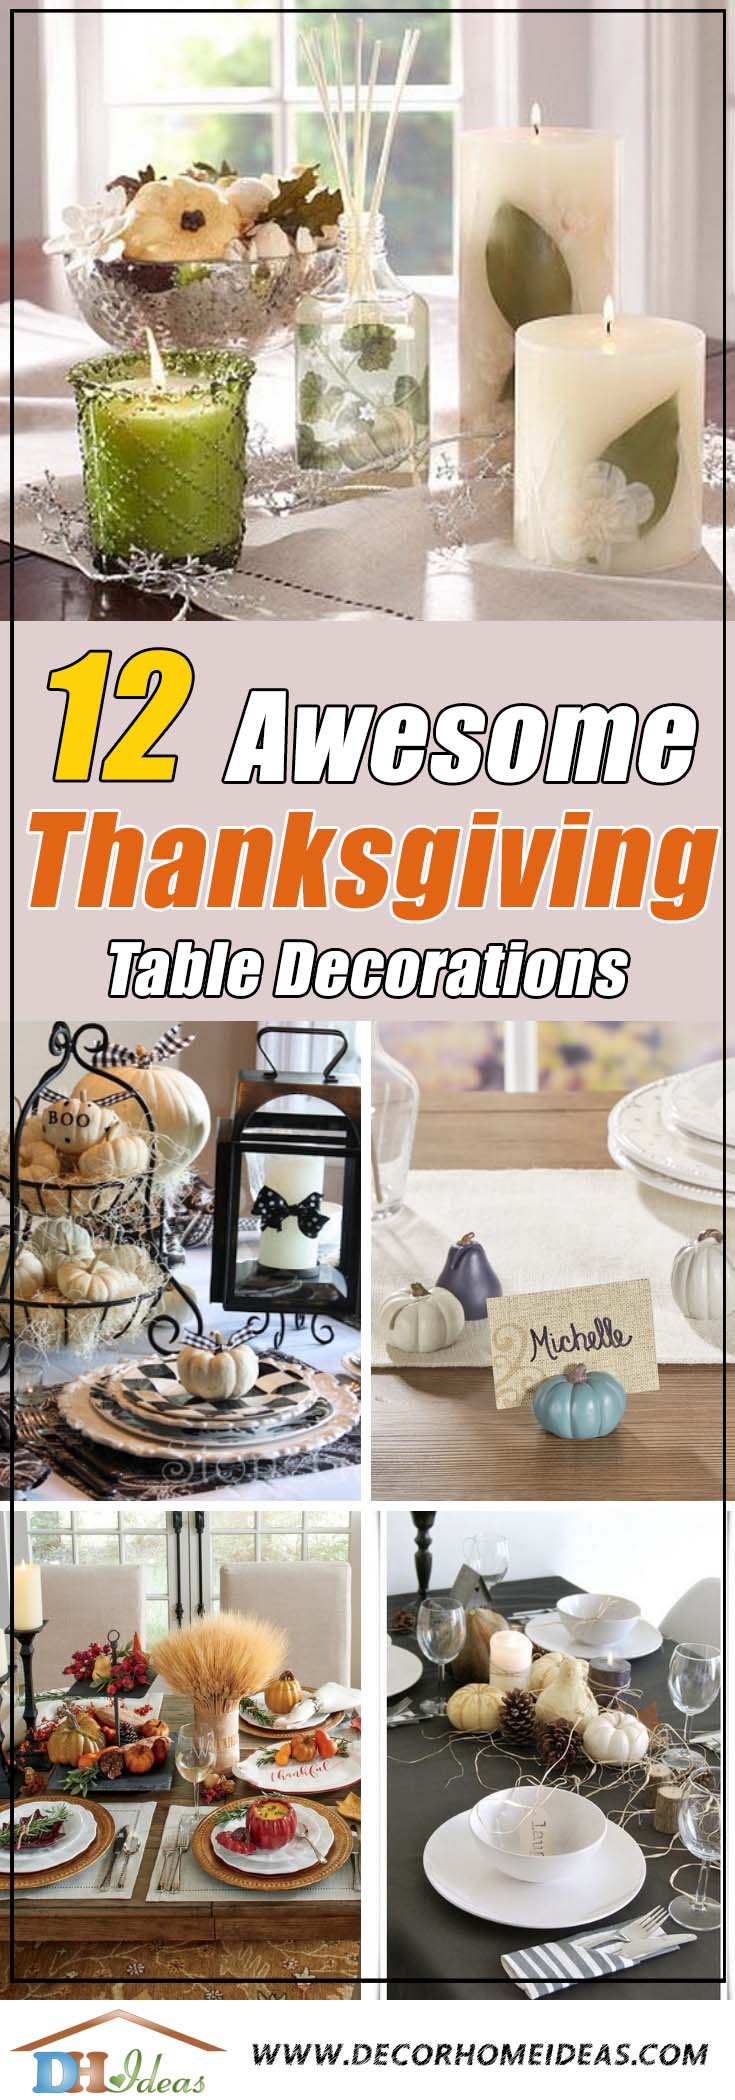 12 Ways To Decorate Thanksgiving Table With Grace | Table setting and centerpieces on thanksgiving. #thanksgiving #tablesetting #homedecor #falldecor #decoratingideas #falldecorideas #ornaments #decorhomeideas